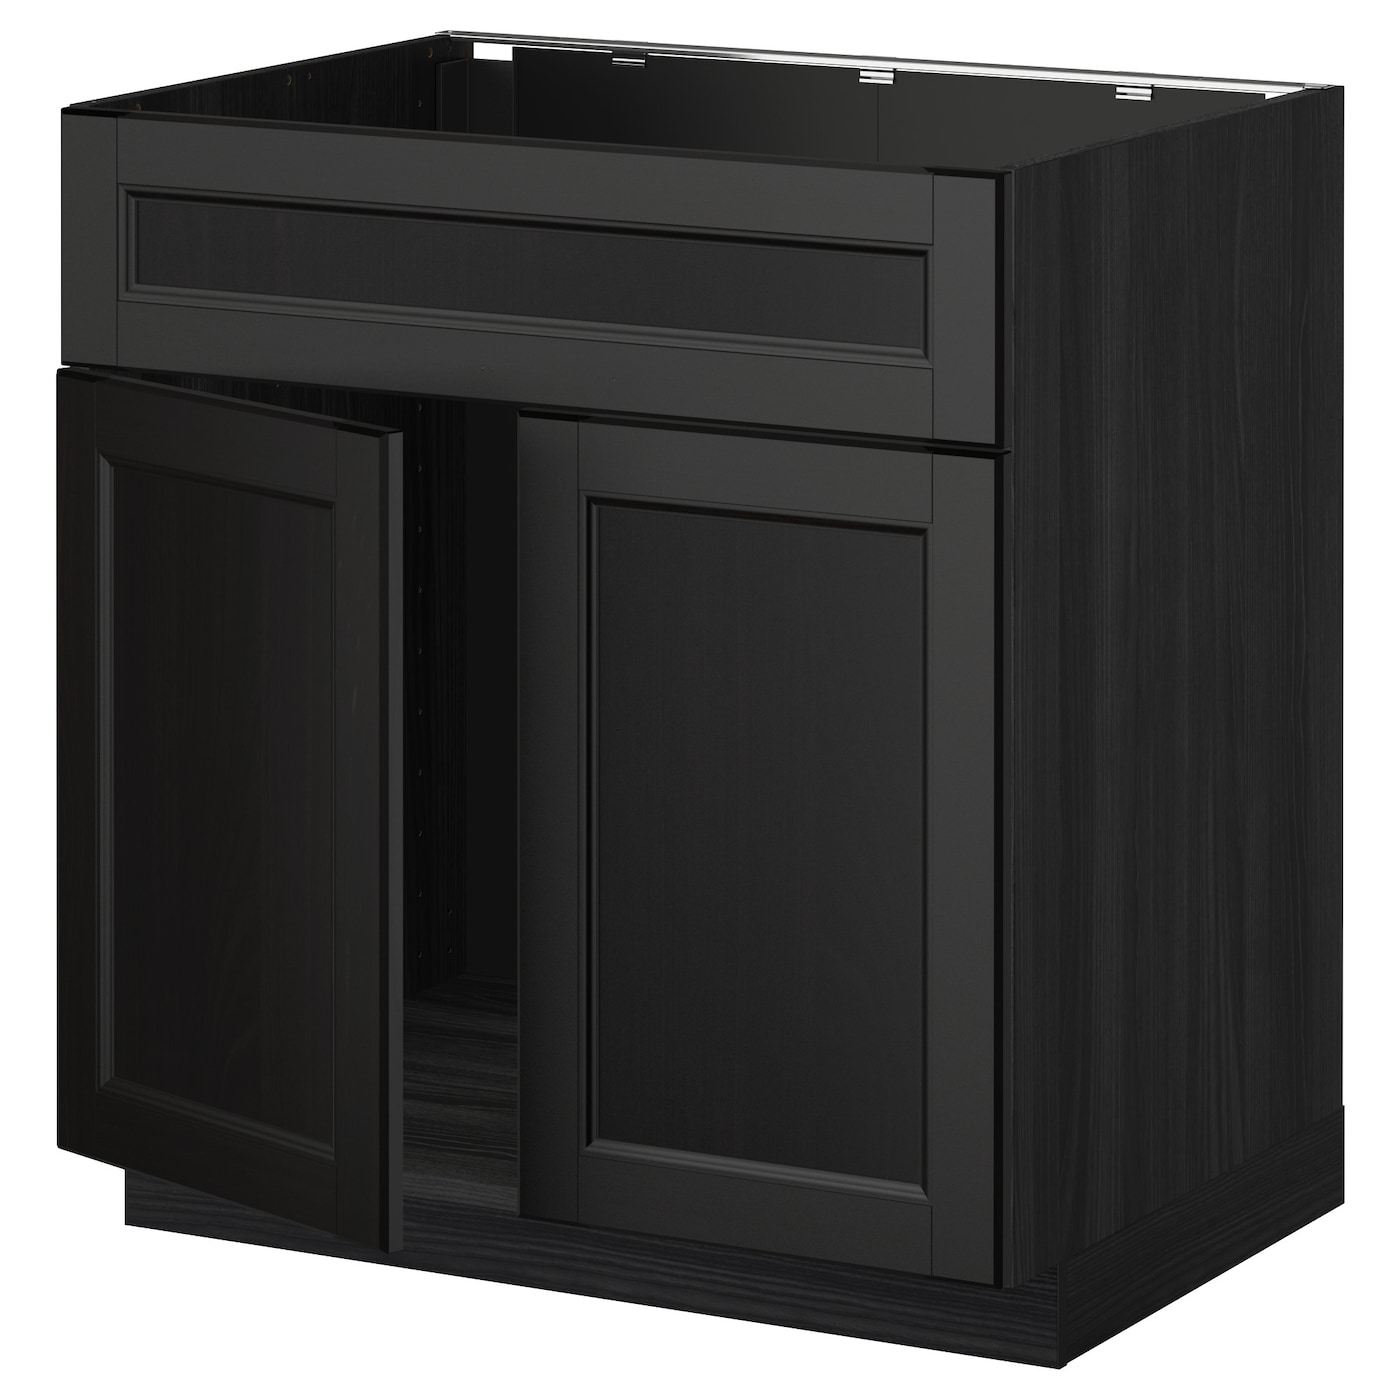 Metod base cabinet f sink w 2 doors front black laxarby for Black cabinet with doors